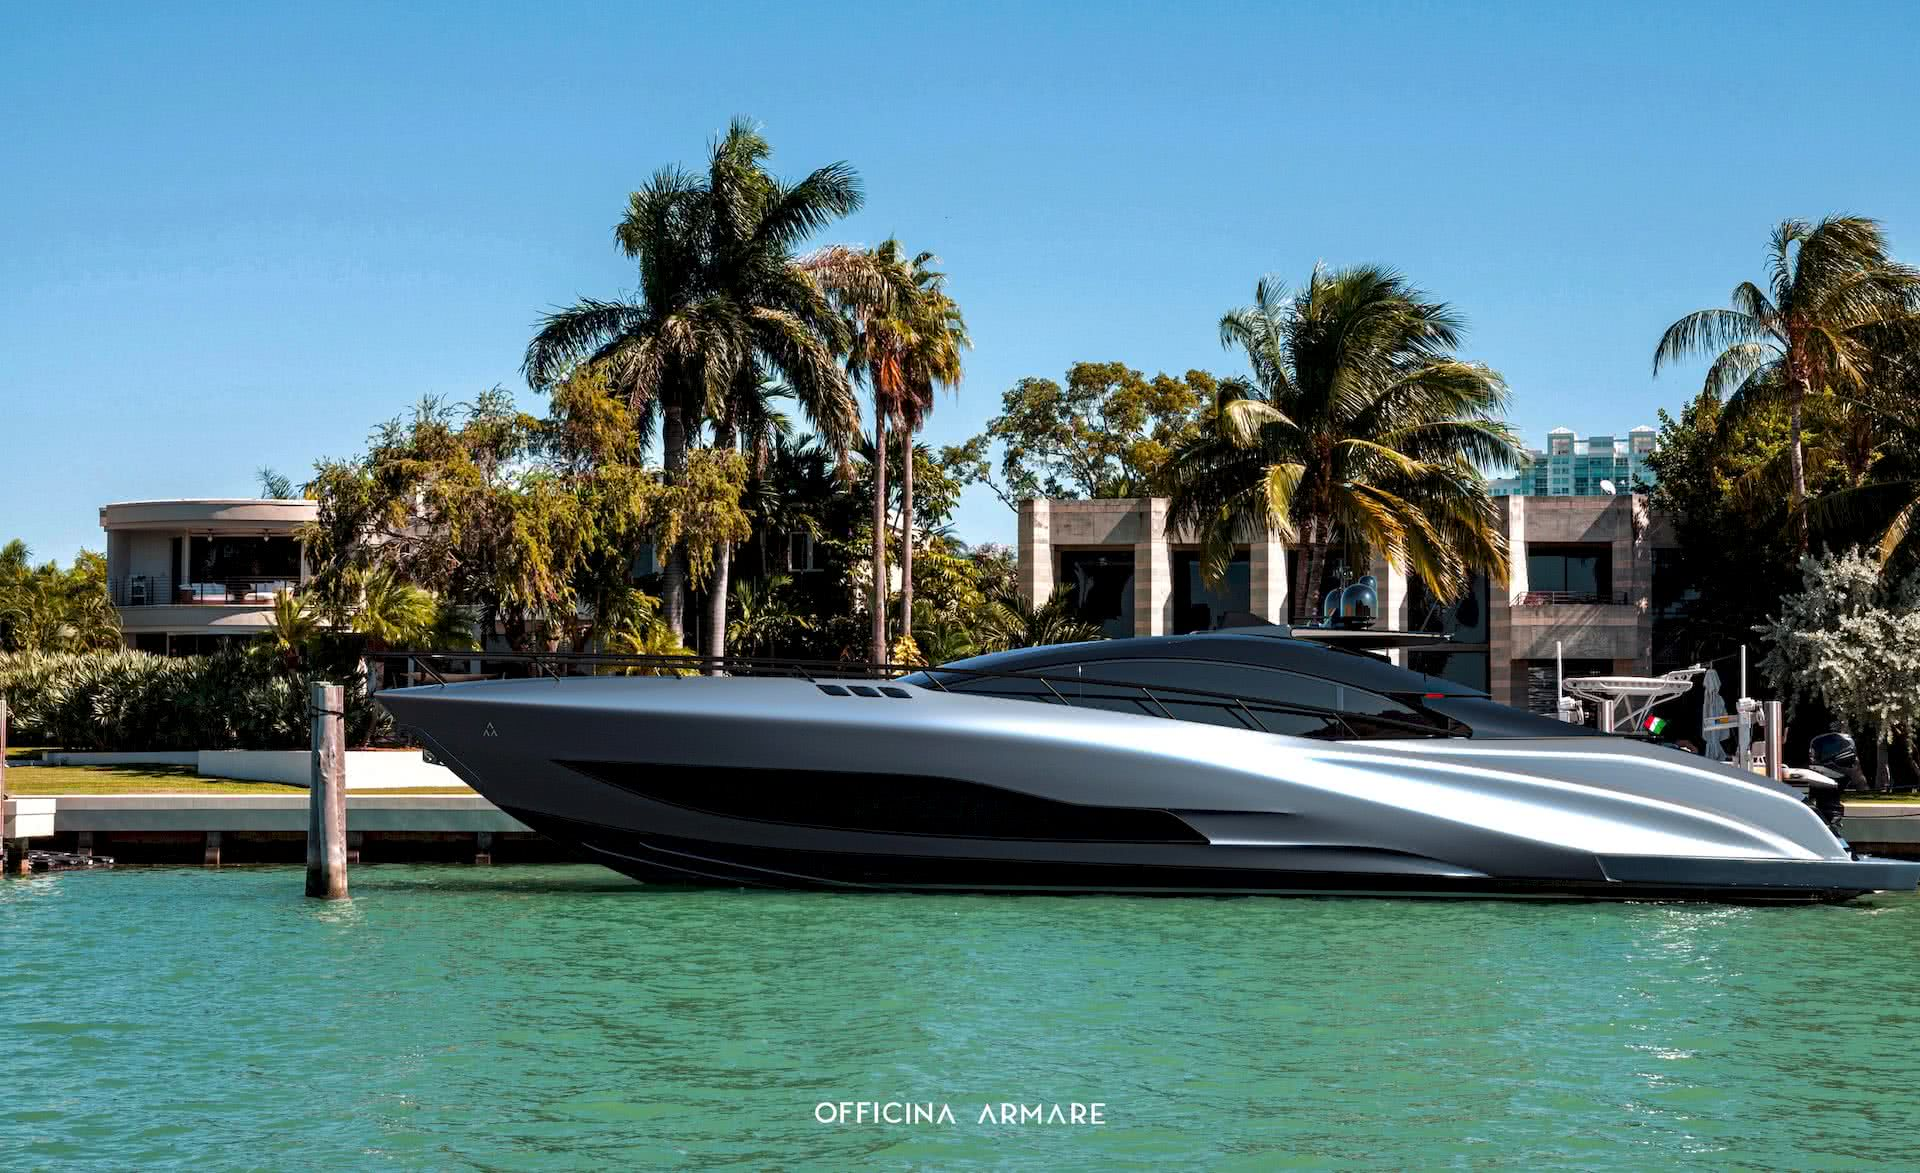 A88 GranSport Yacht Officina Armare